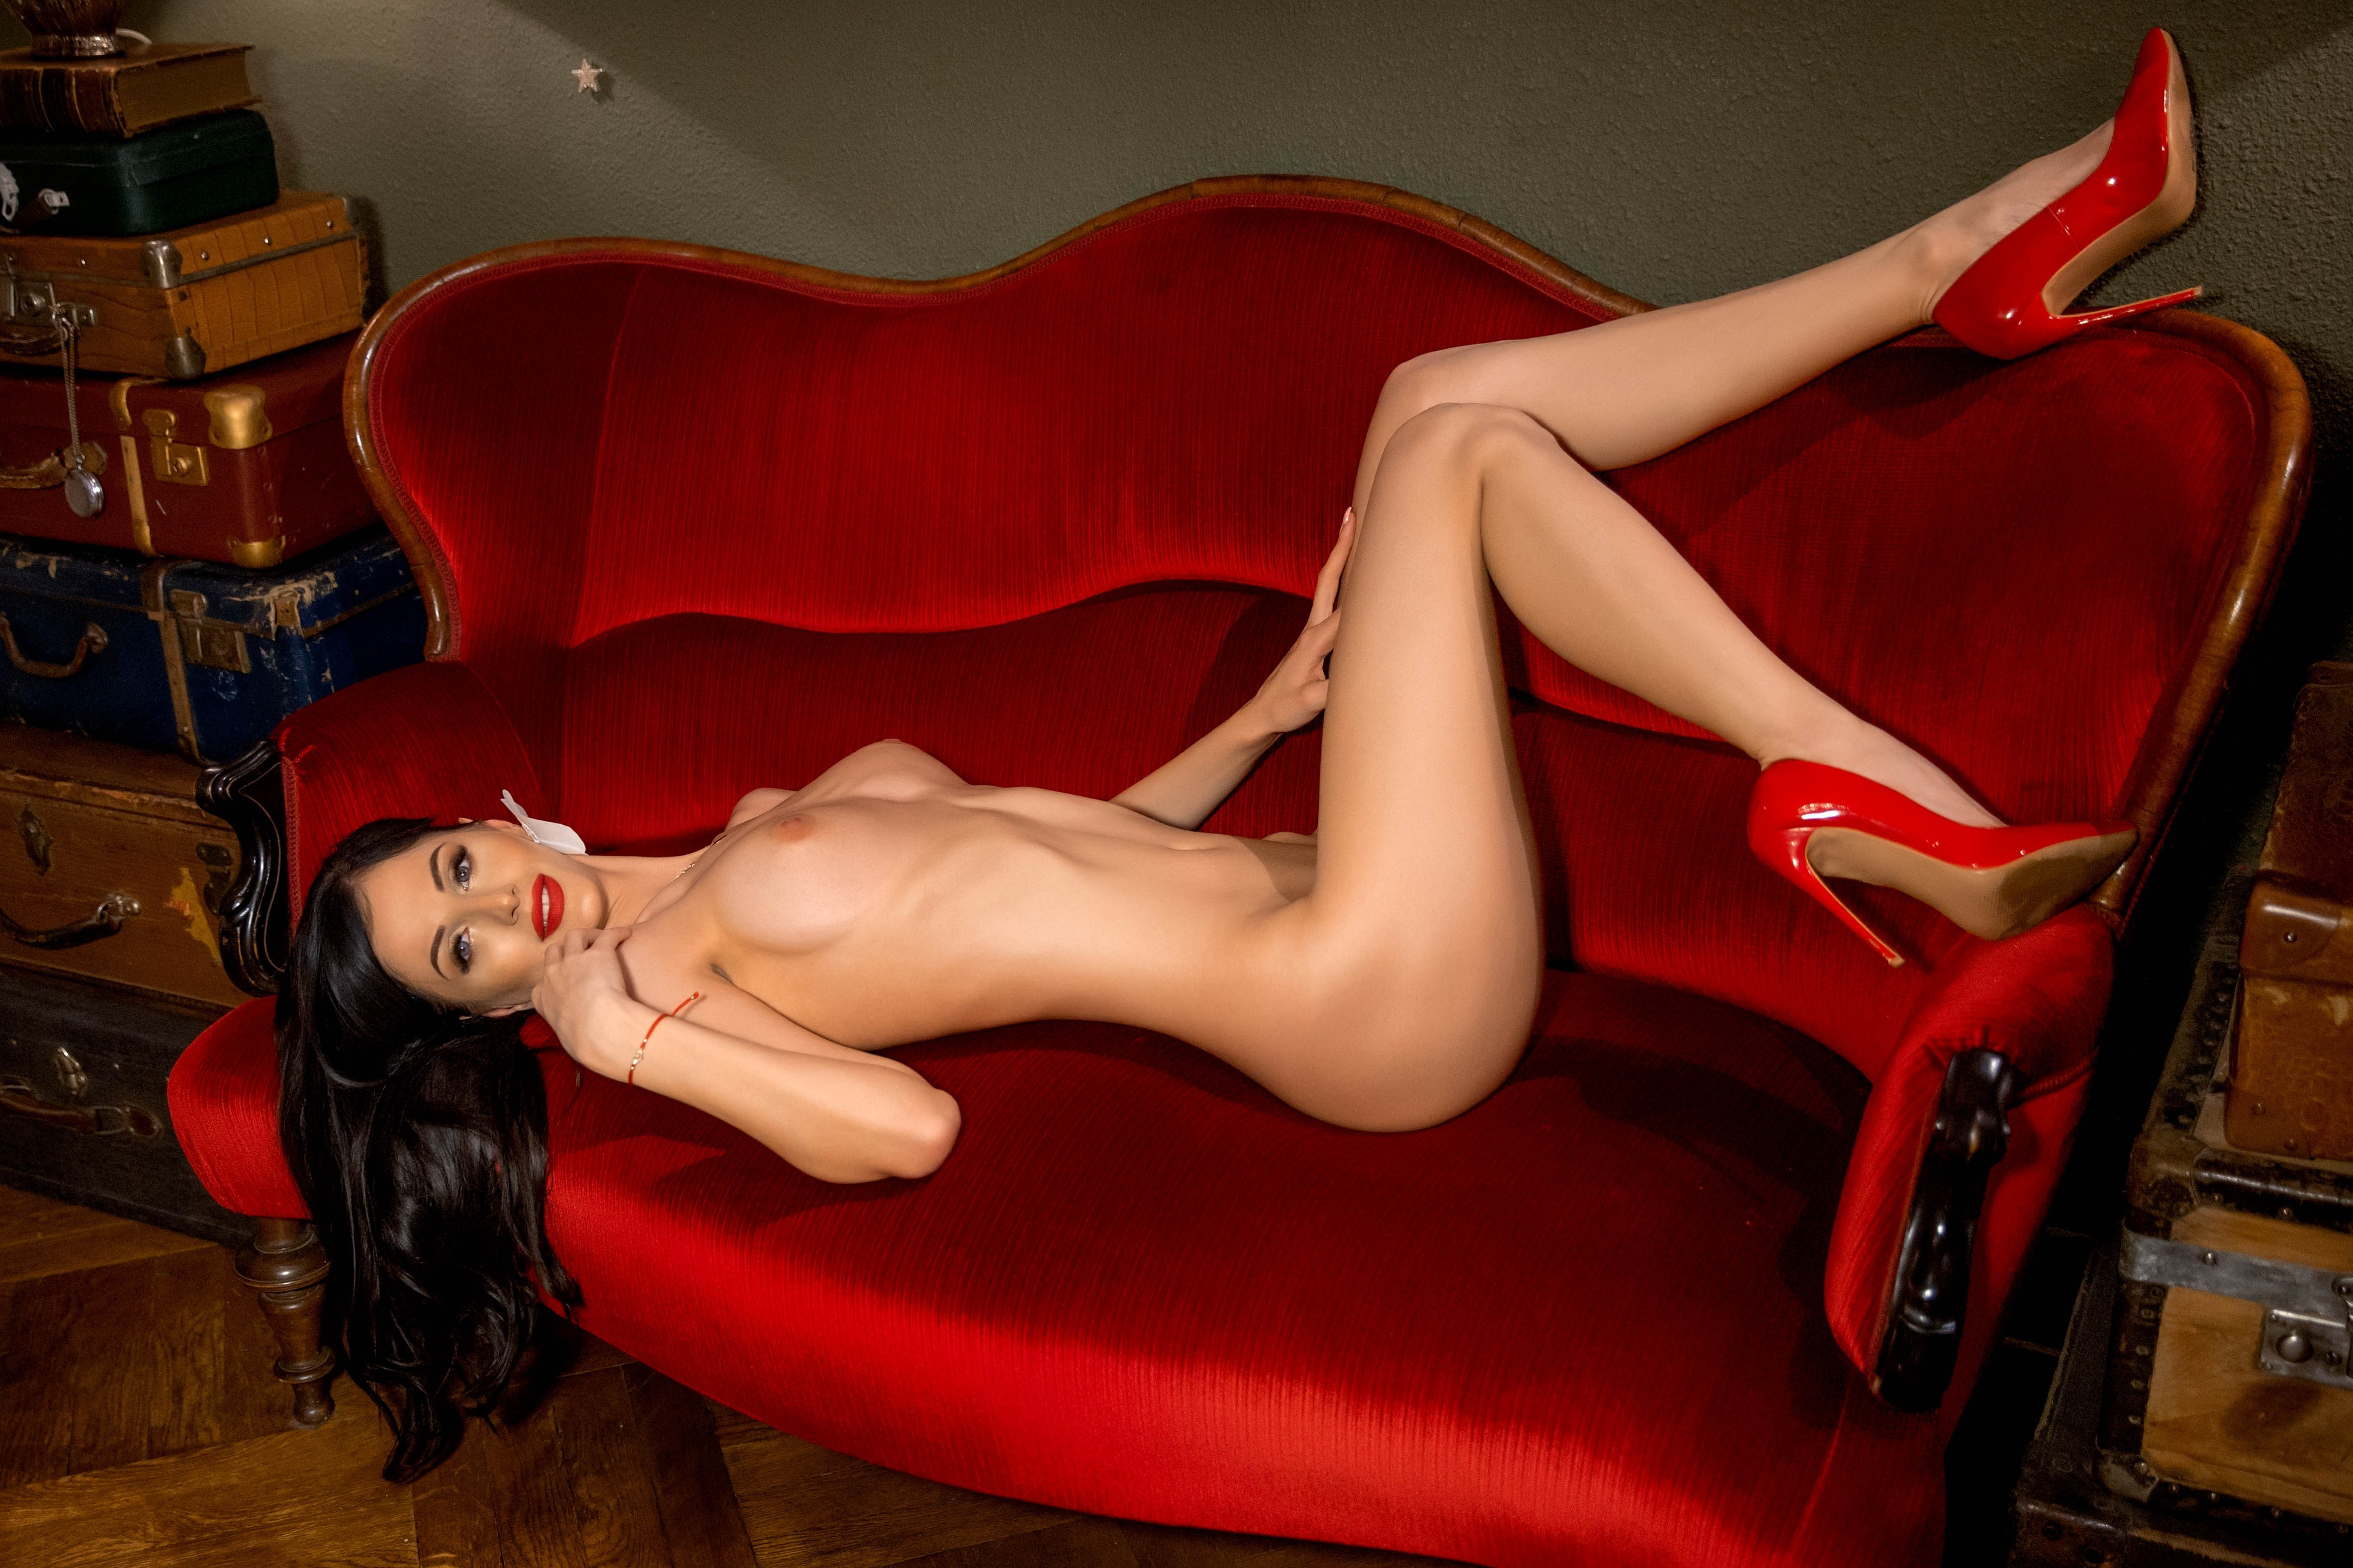 You can find her on www.webgirls.com There you can find a...